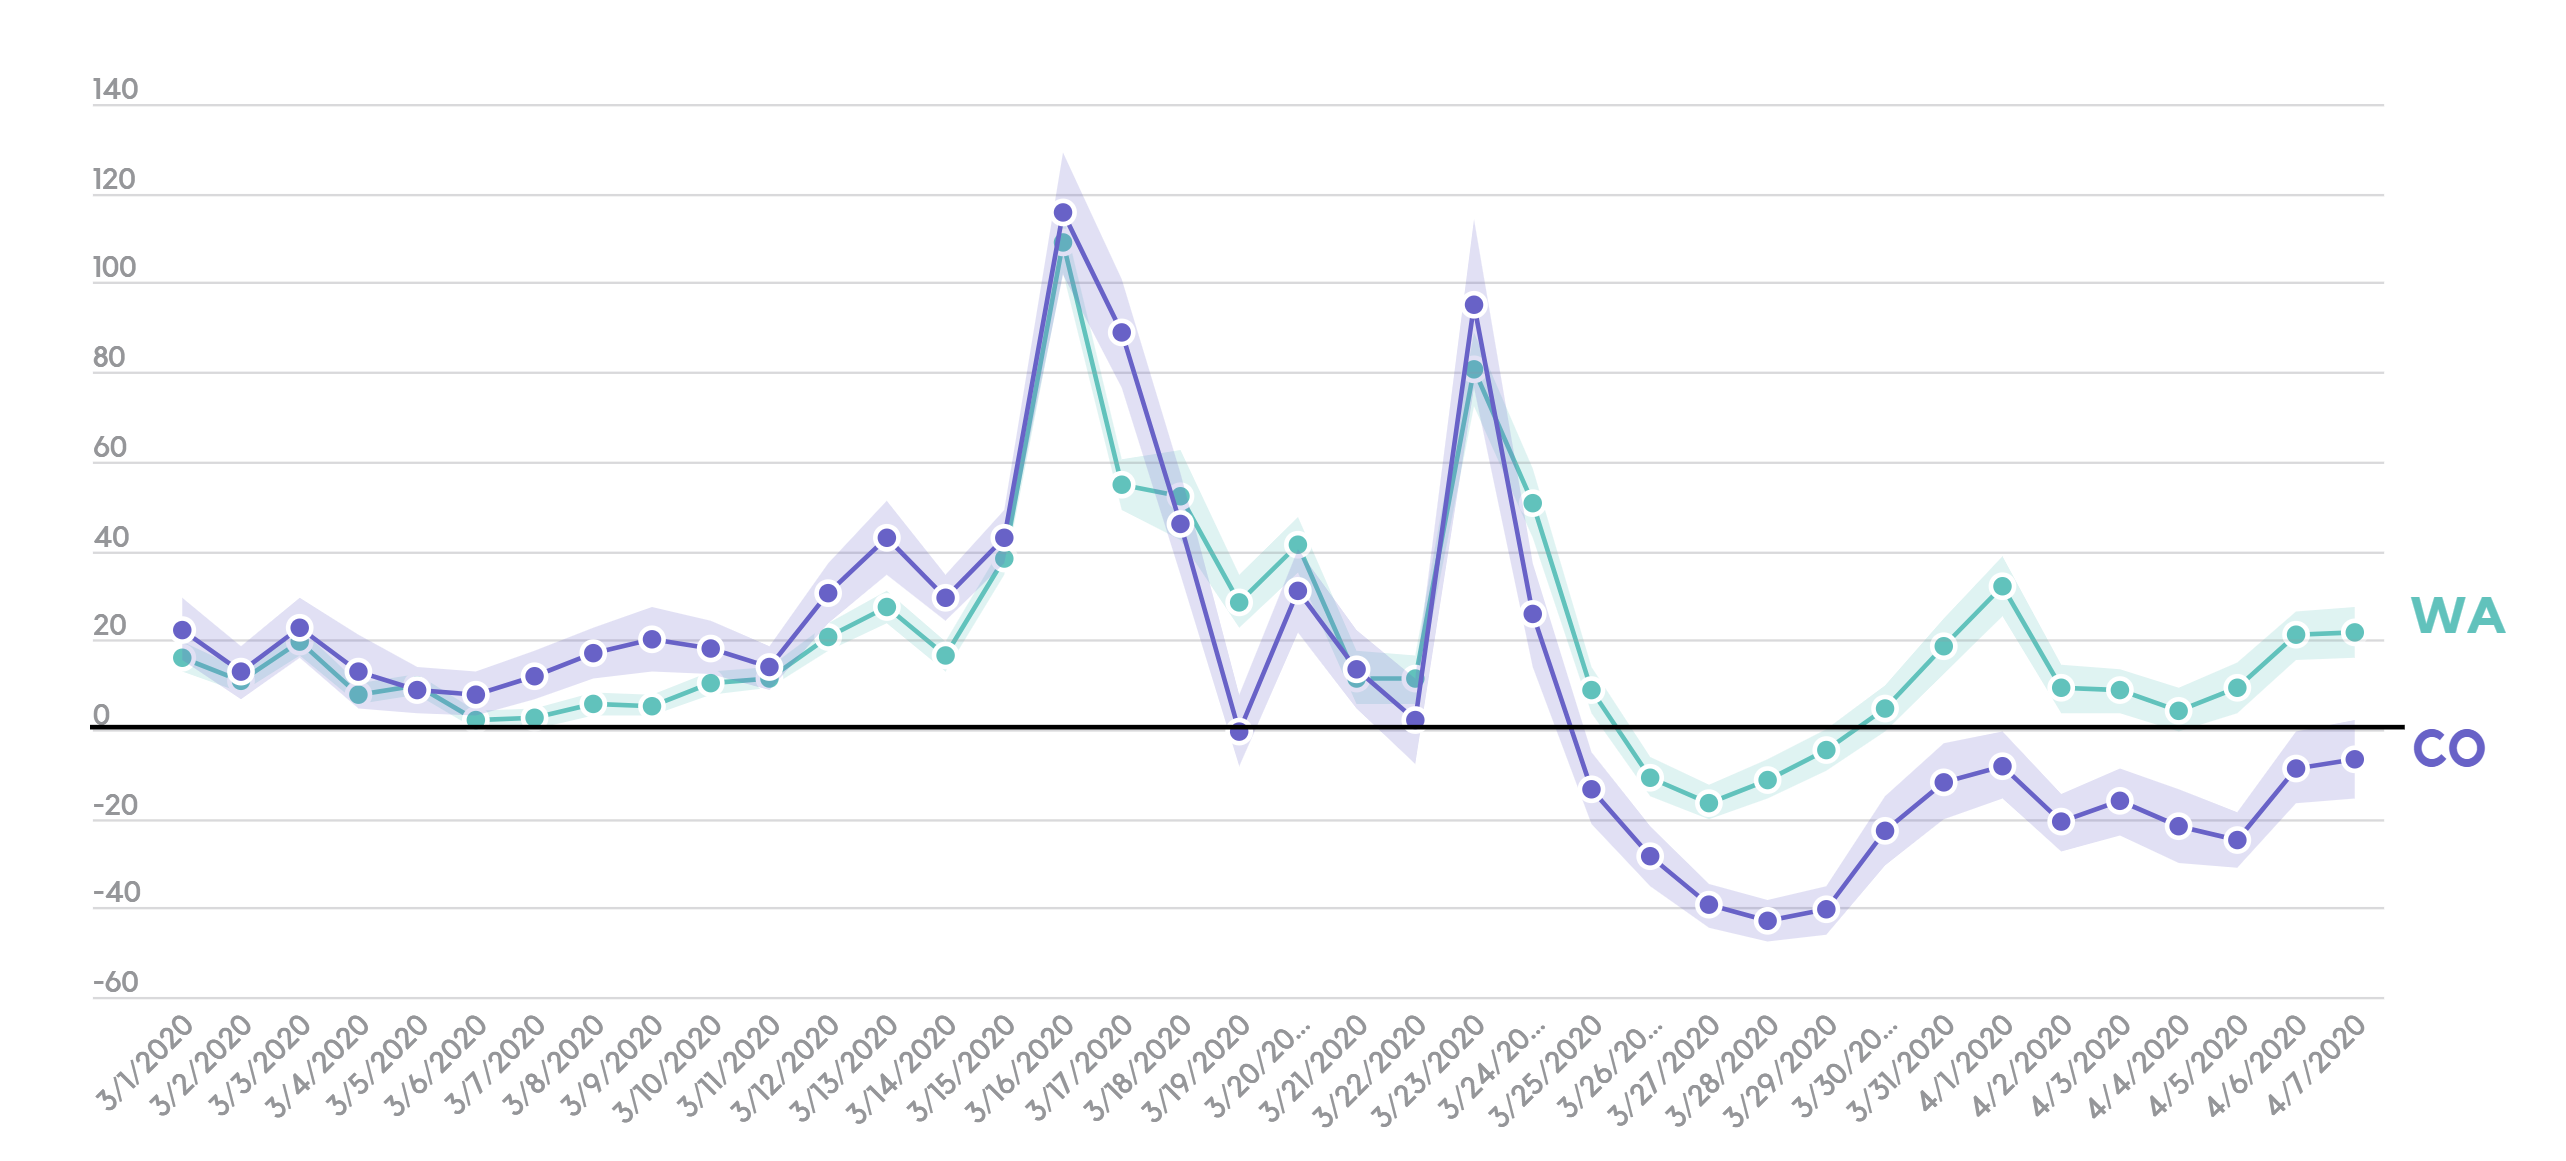 Average store change in cannabis sales during Covid-19